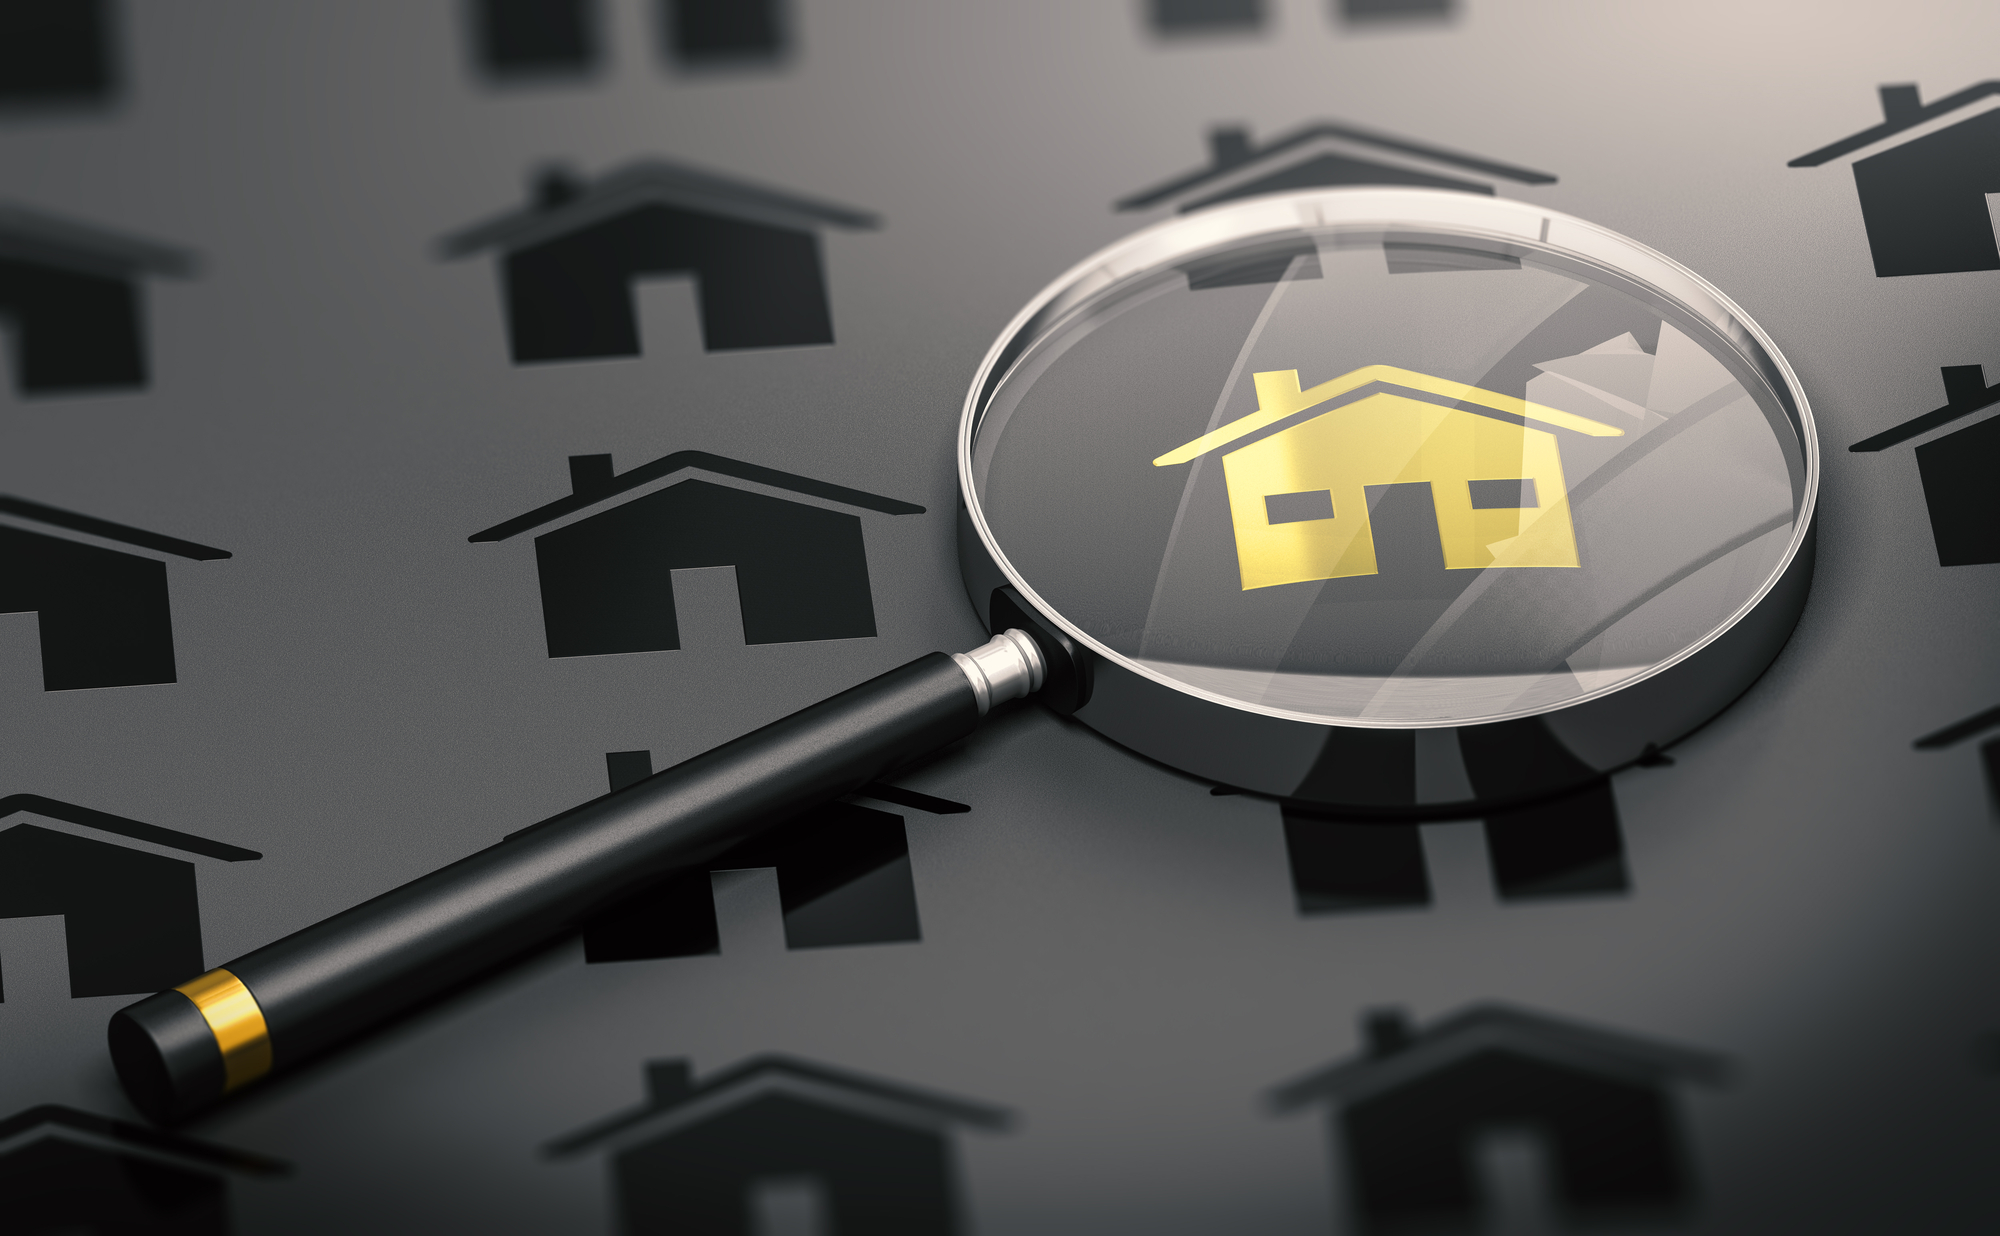 Many black properties and one golden house standing out from the crowd and a magnifying glass